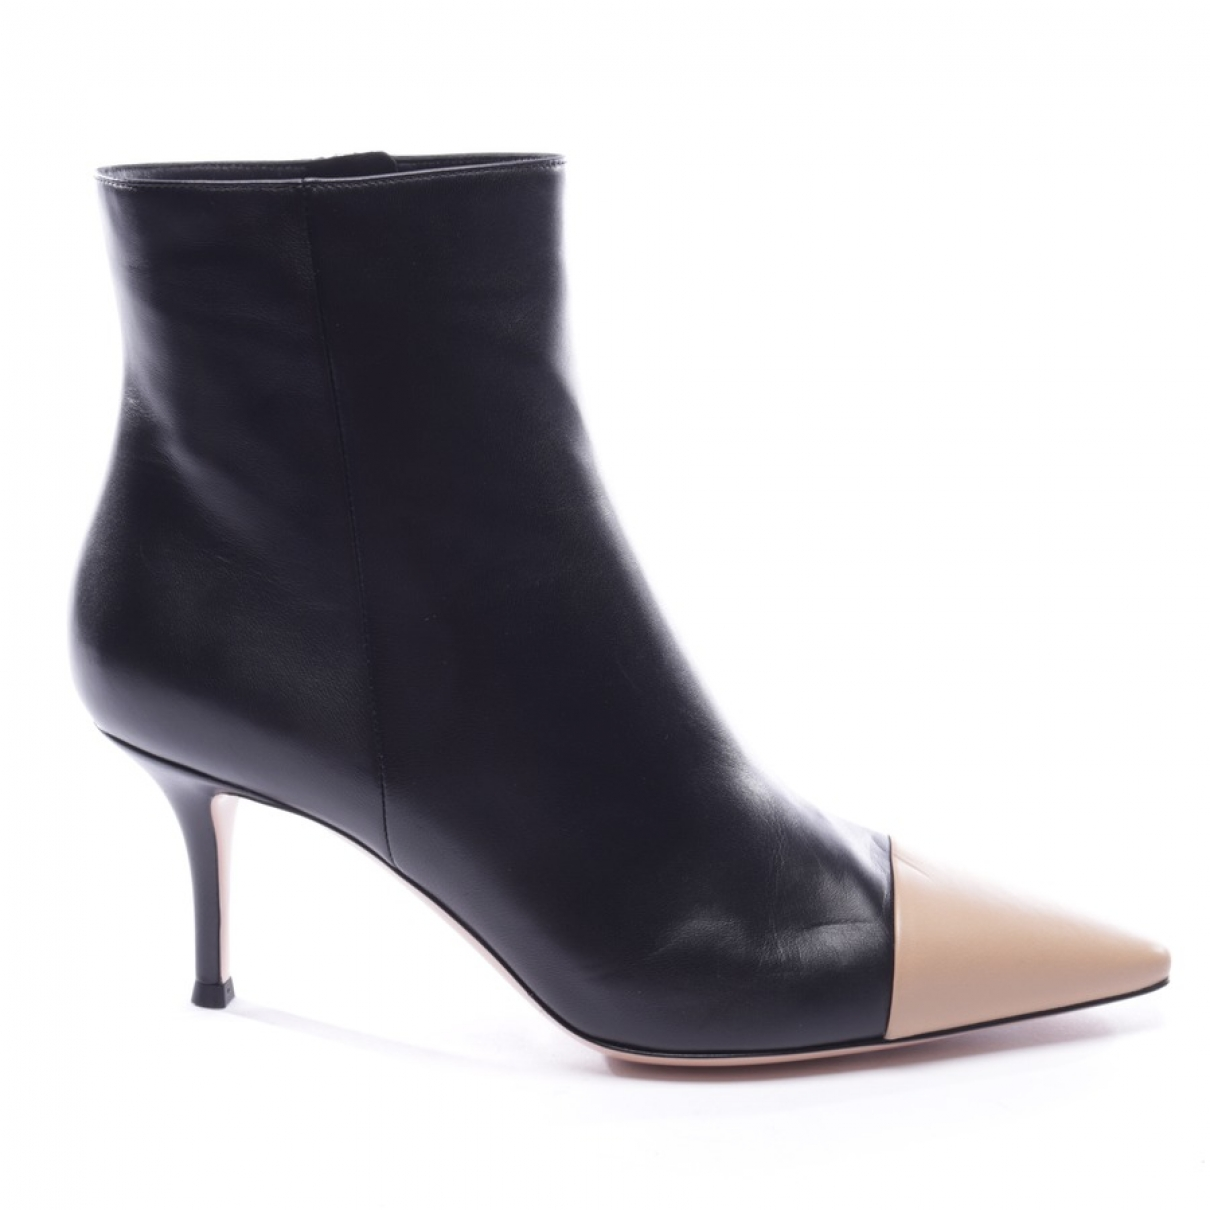 Gianvito Rossi \N Black Leather Ankle boots for Women 40 EU